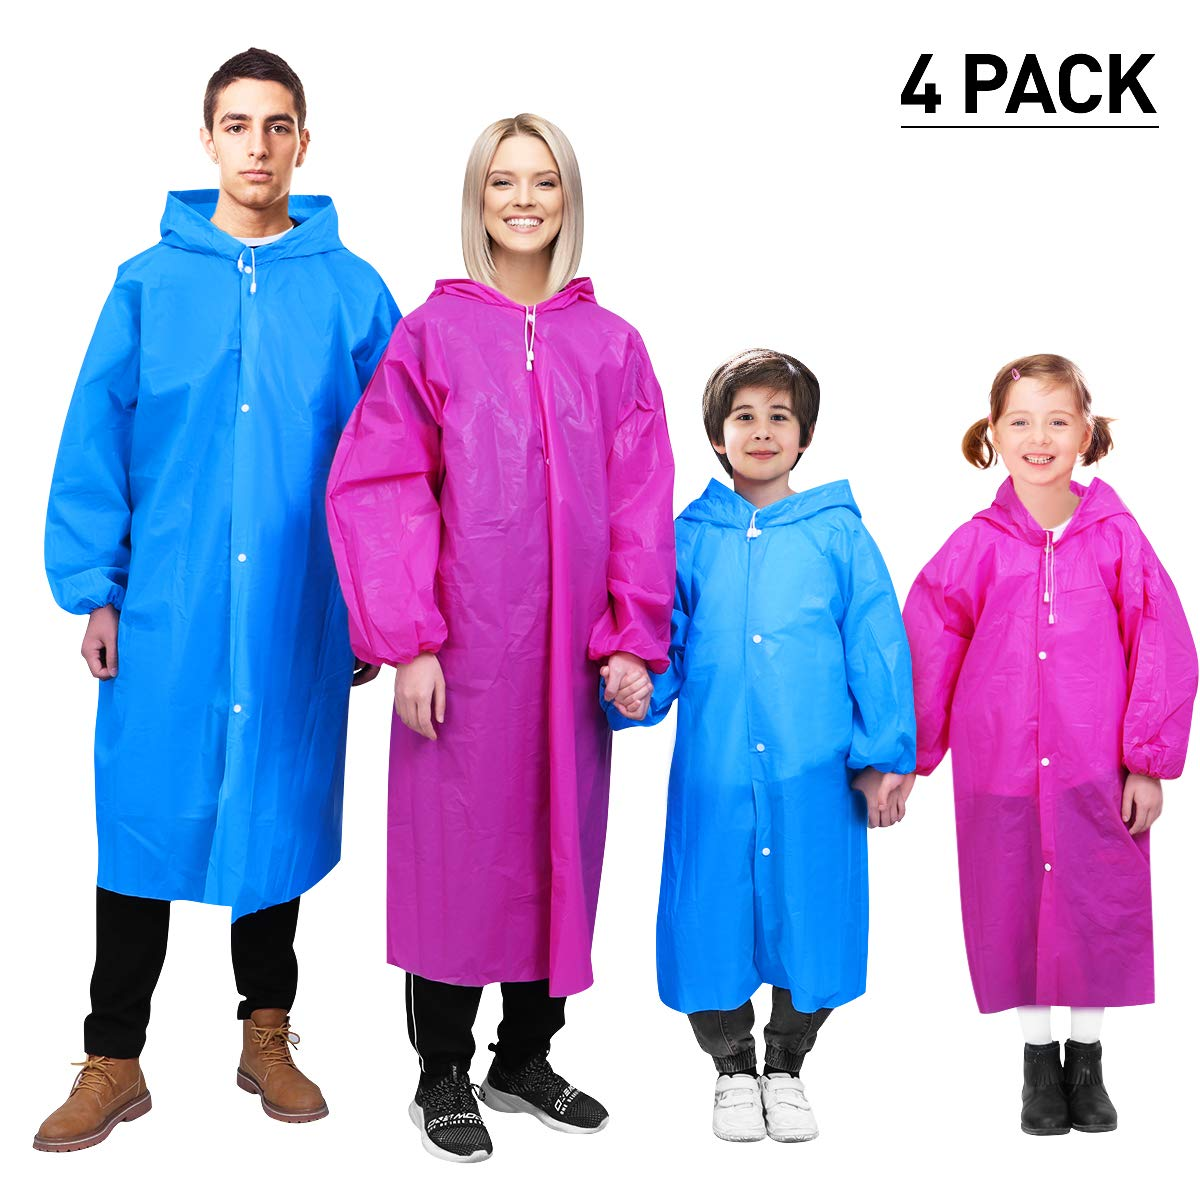 MOVTOTOP Rain Ponchos, Reusable Ponchos for Adults and Kids, Poncho Family Pack Waterproof for Emergency, Portable Rain Poncho with Drawstring Hood and Elastic Sleeve for Hiking Theme Park Outdoor